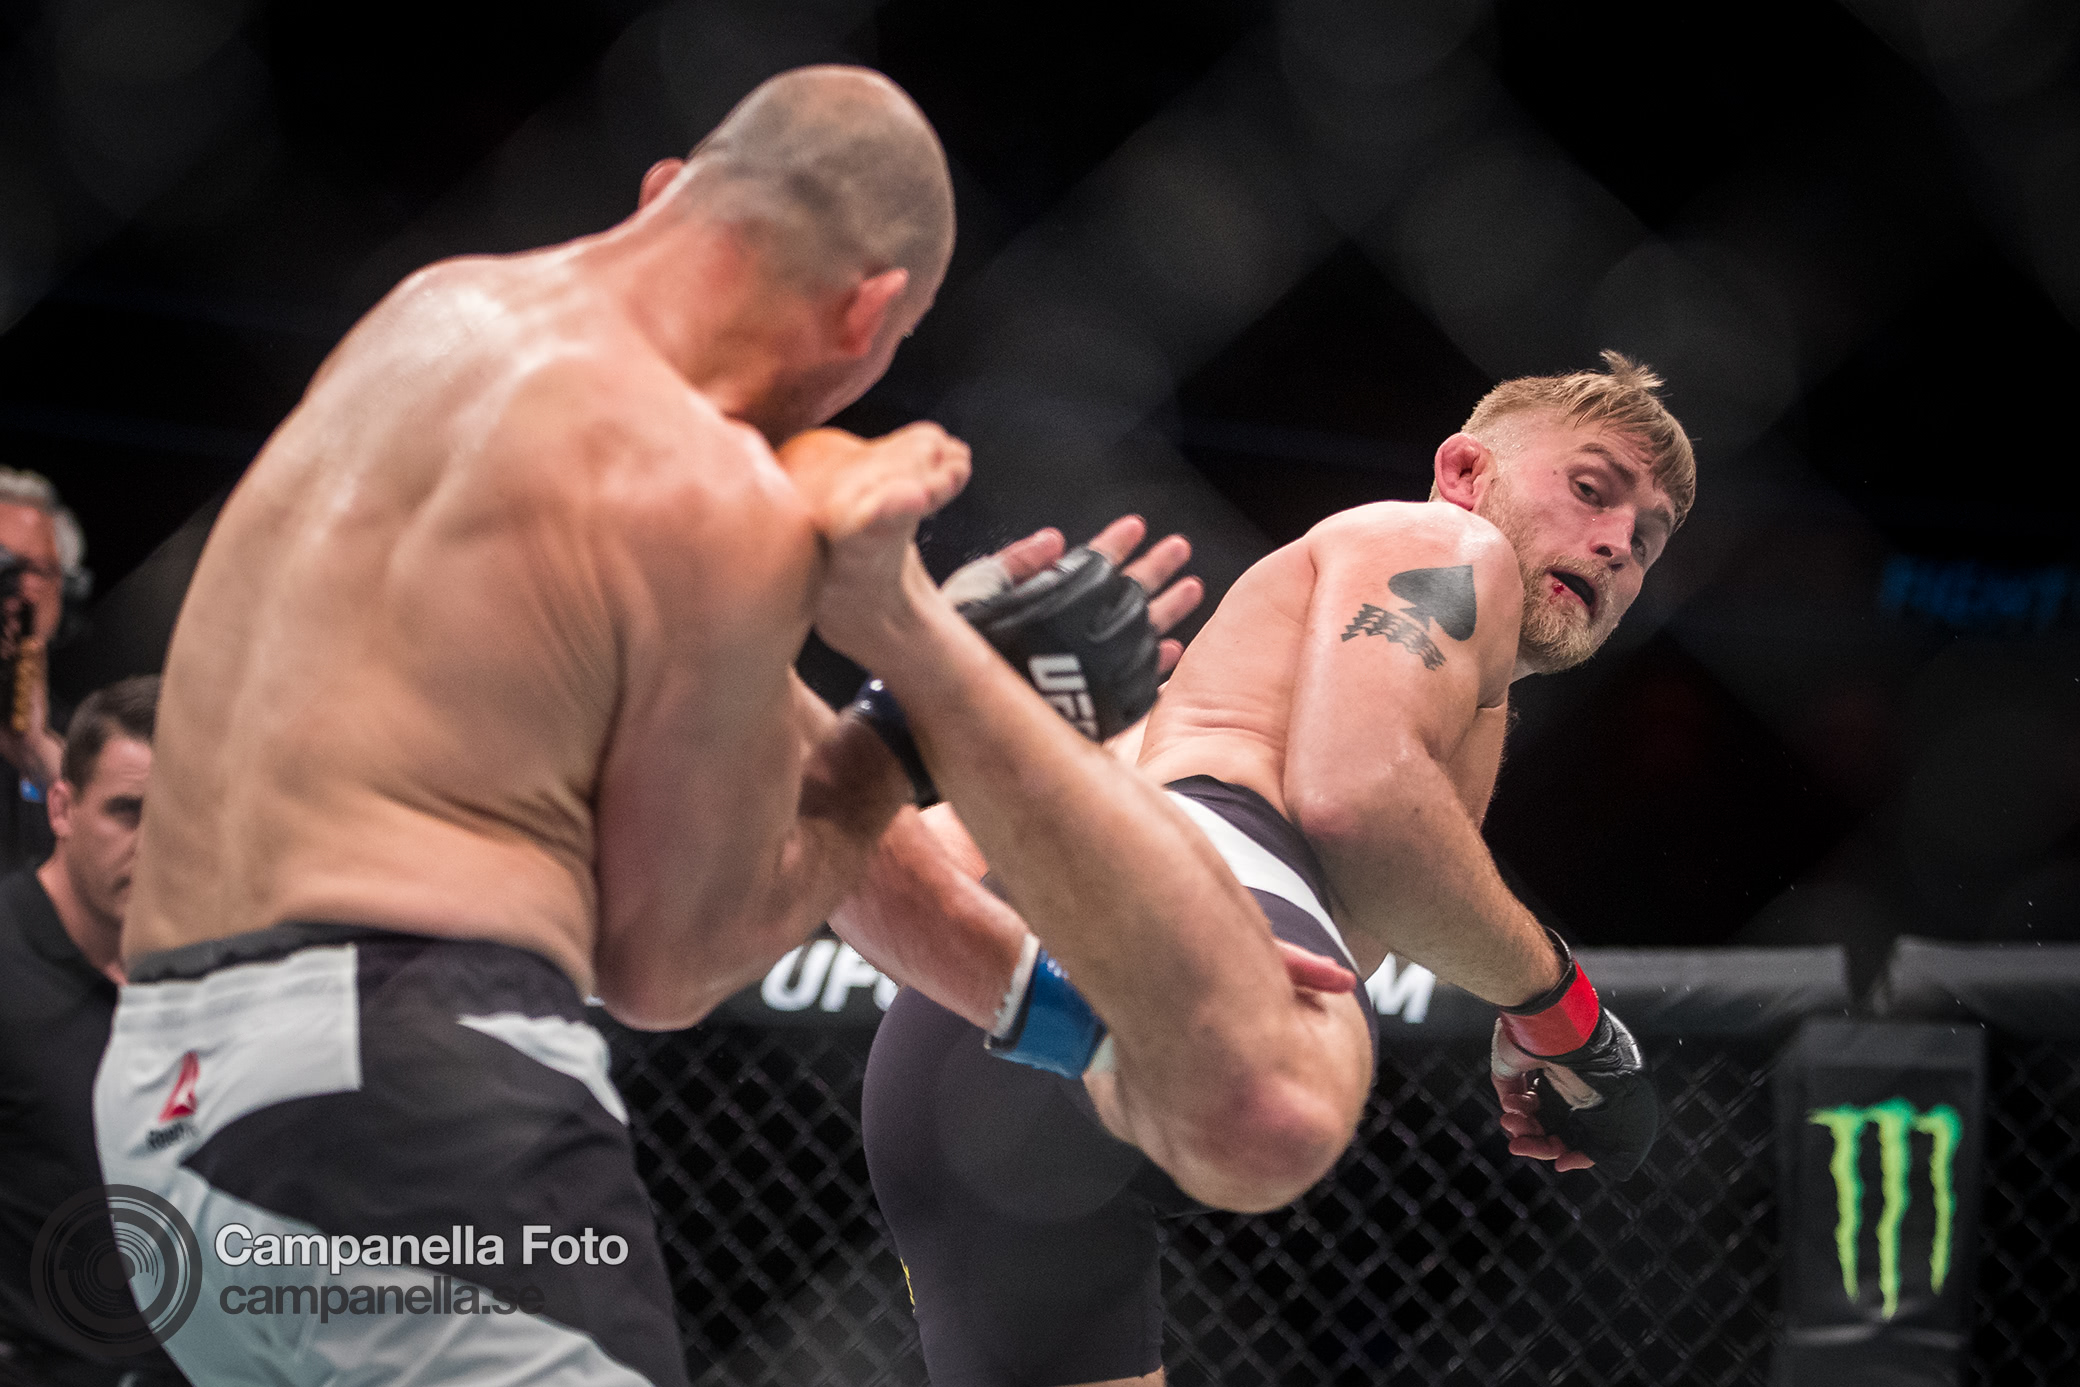 The Mauler back in action with the UFC - Michael Campanella Photography